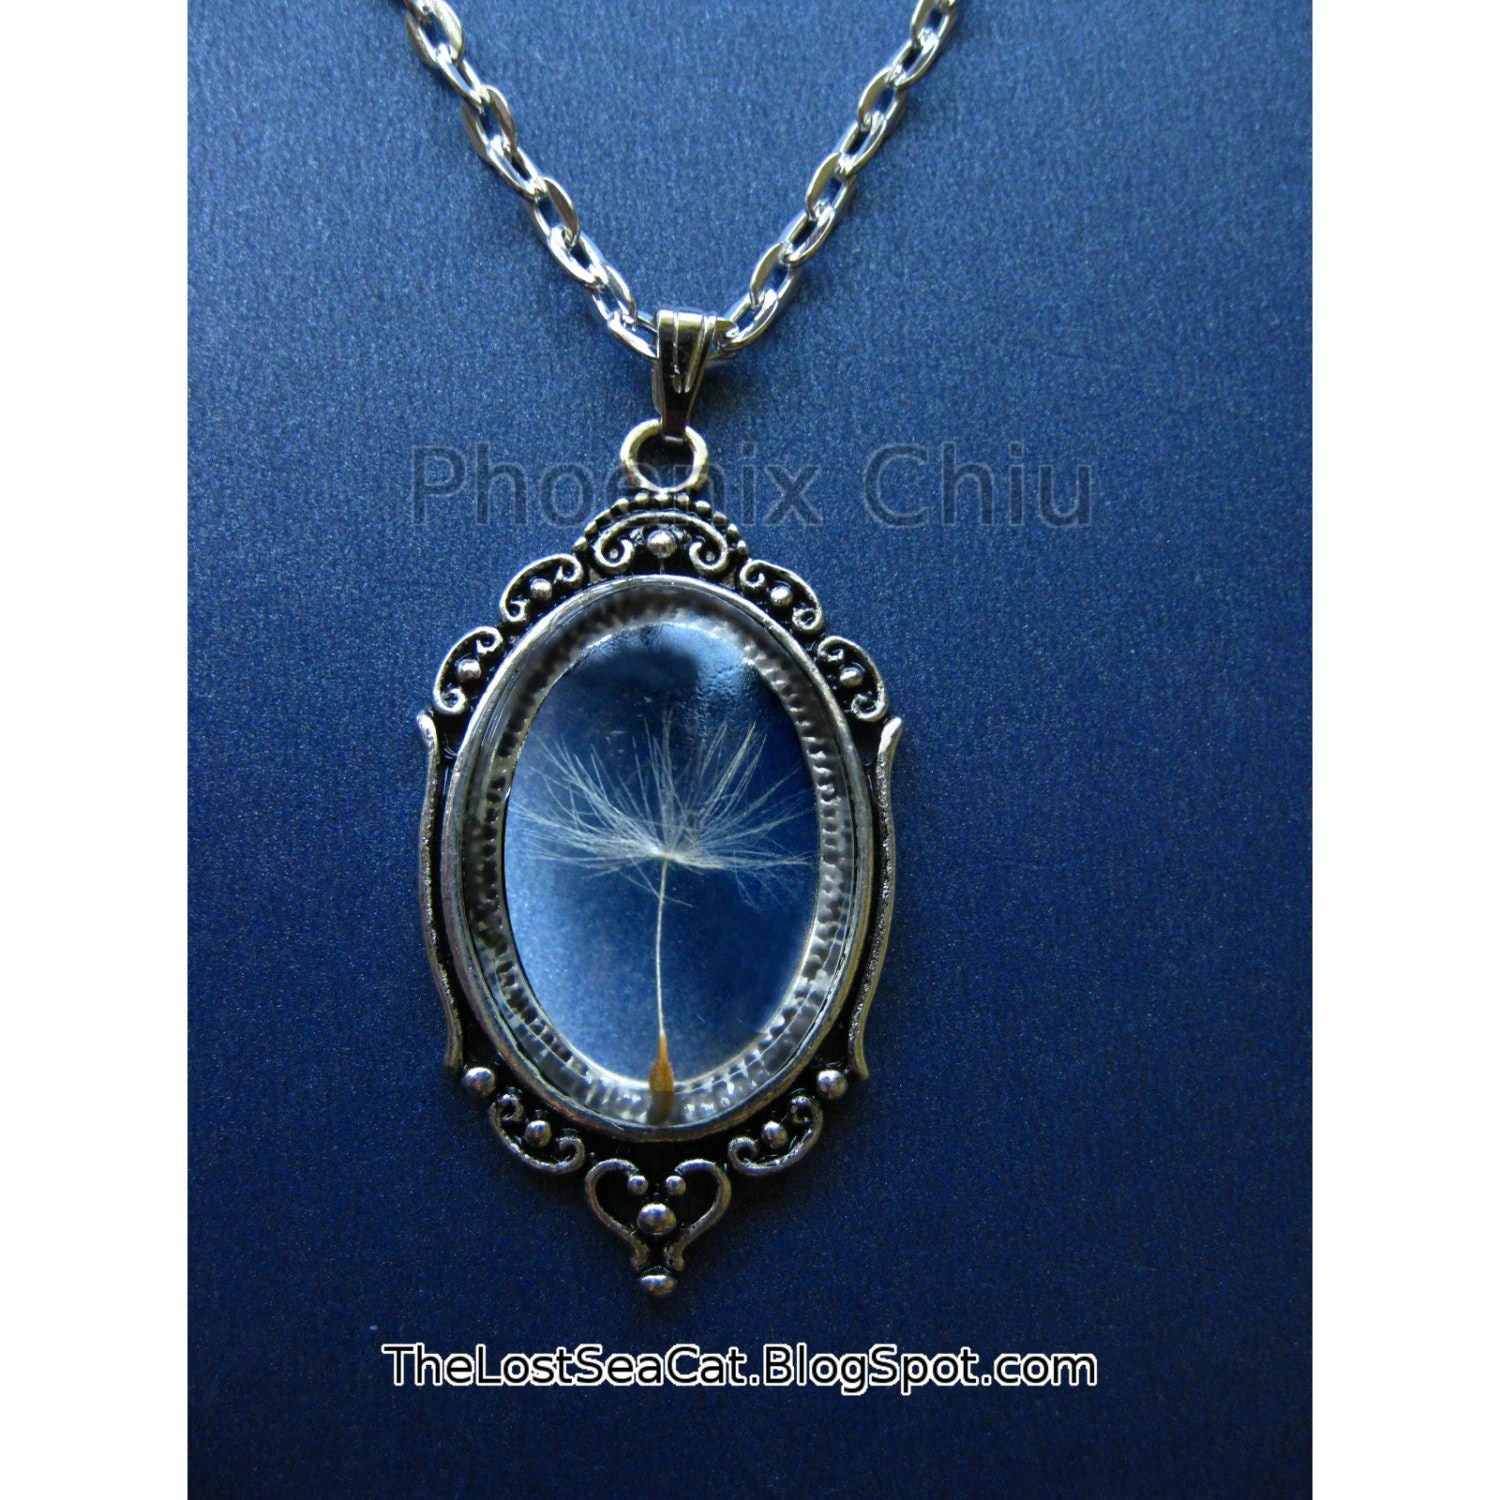 Real Dandelion Seed Jewelry Dandelion Necklace Make A Wish